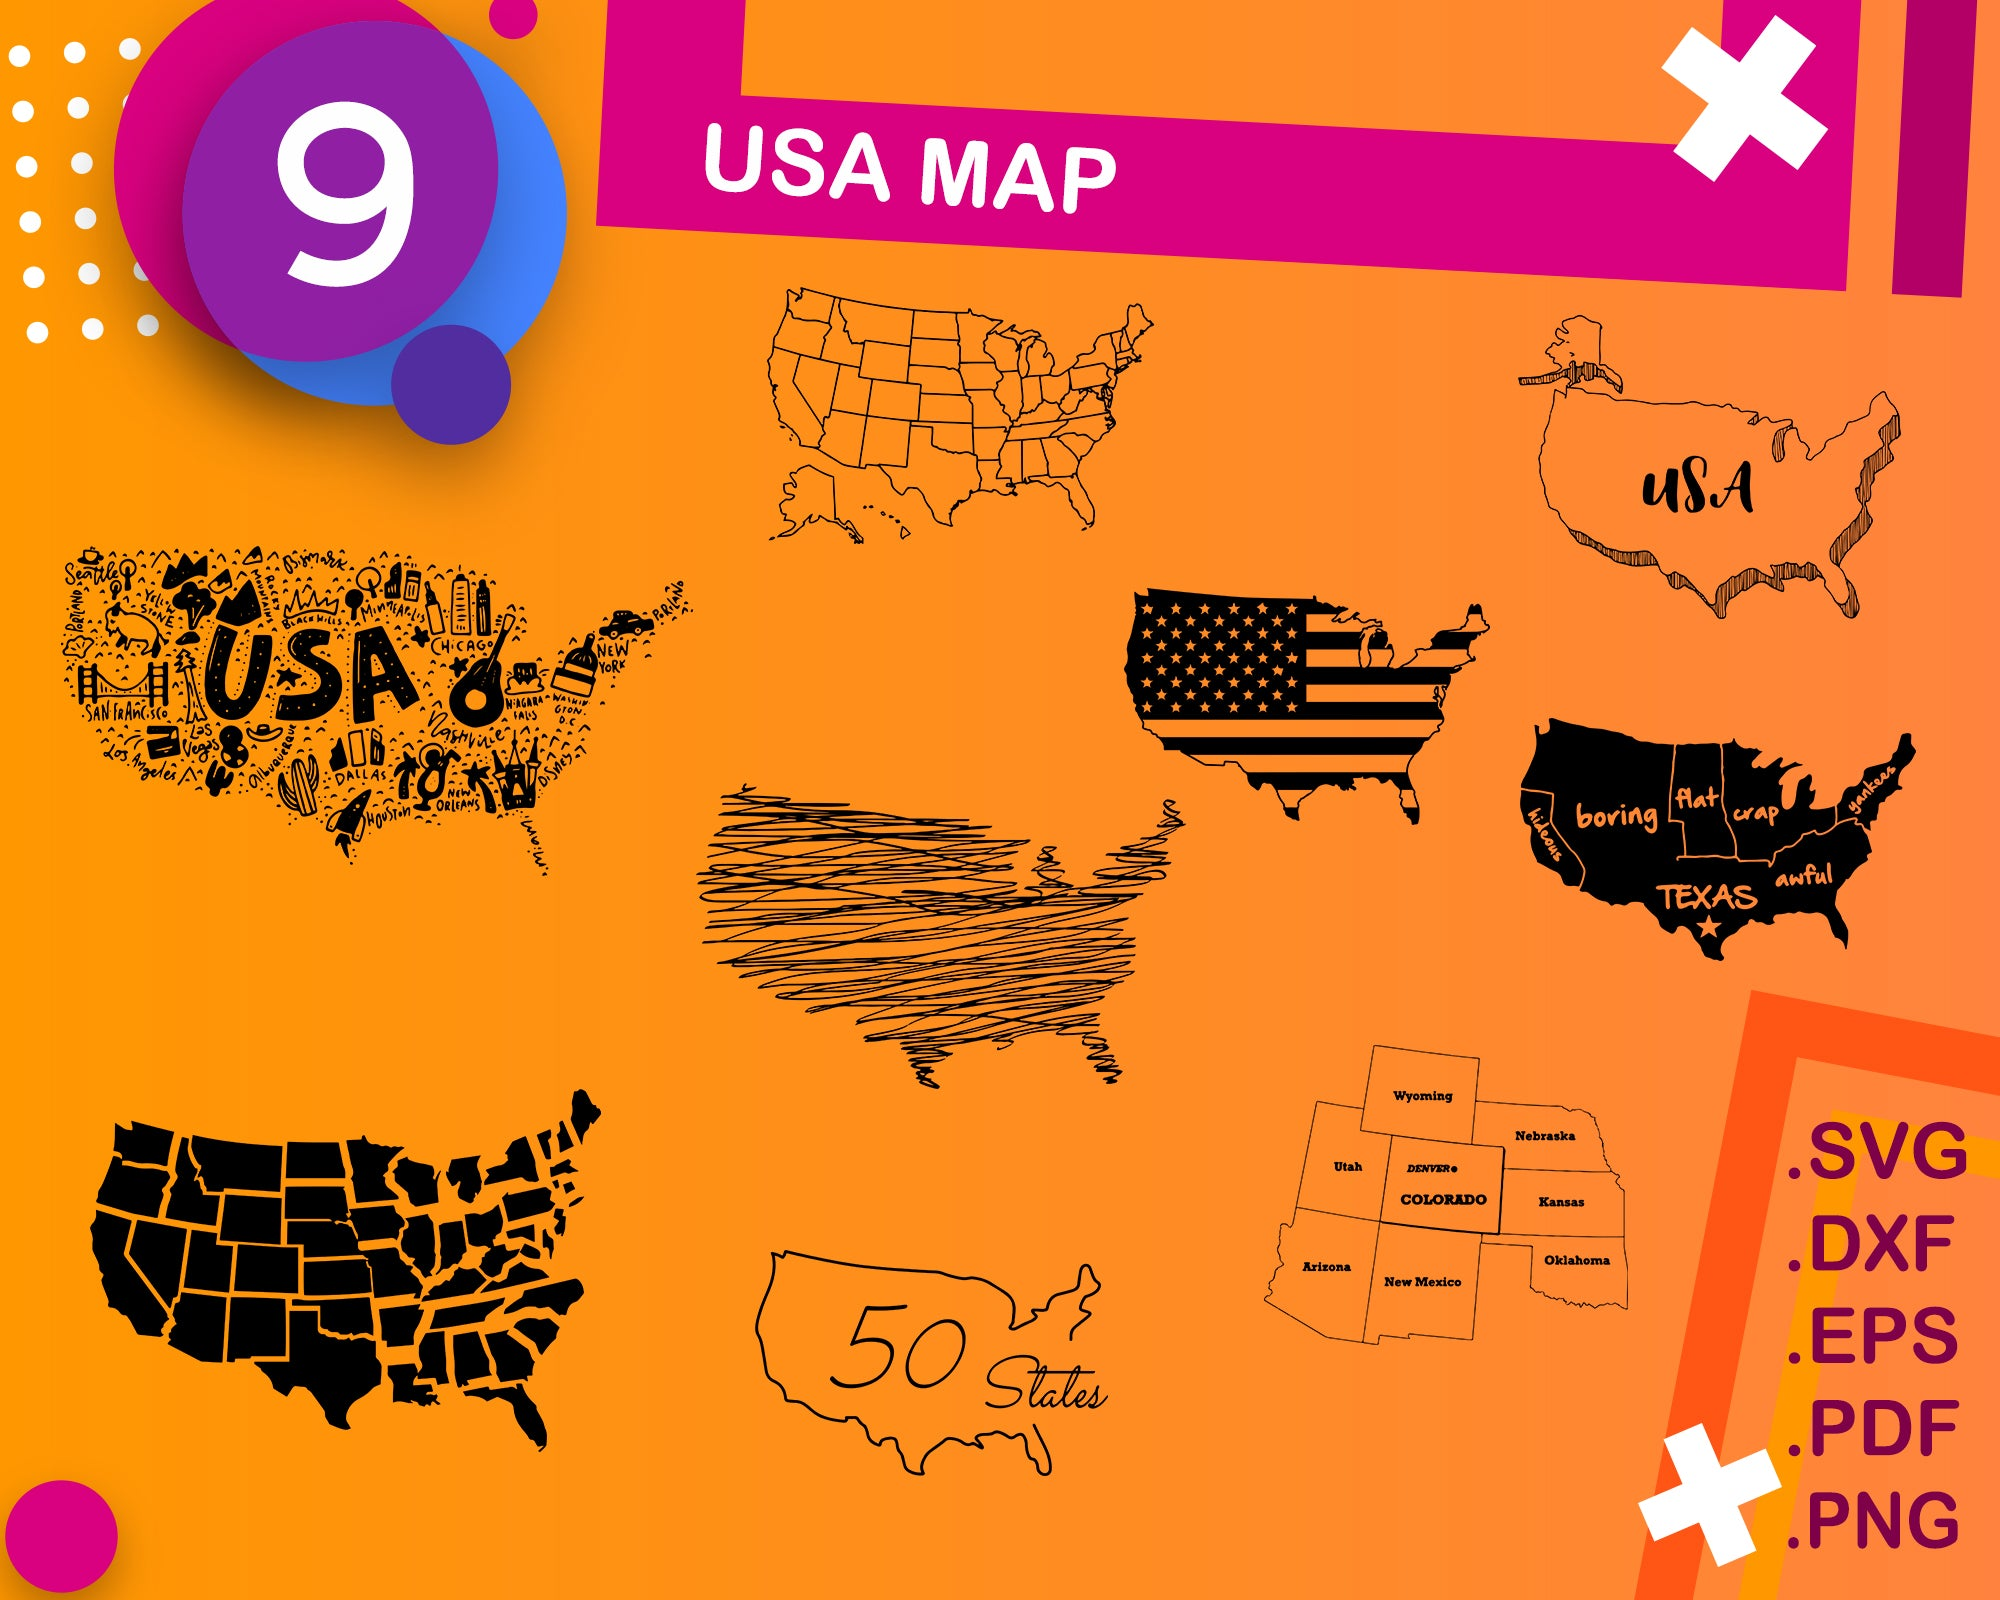 Usa Map Svg Usa State Svg Svg Cutting Files Silhouette Svg 50 Stat Clipartic